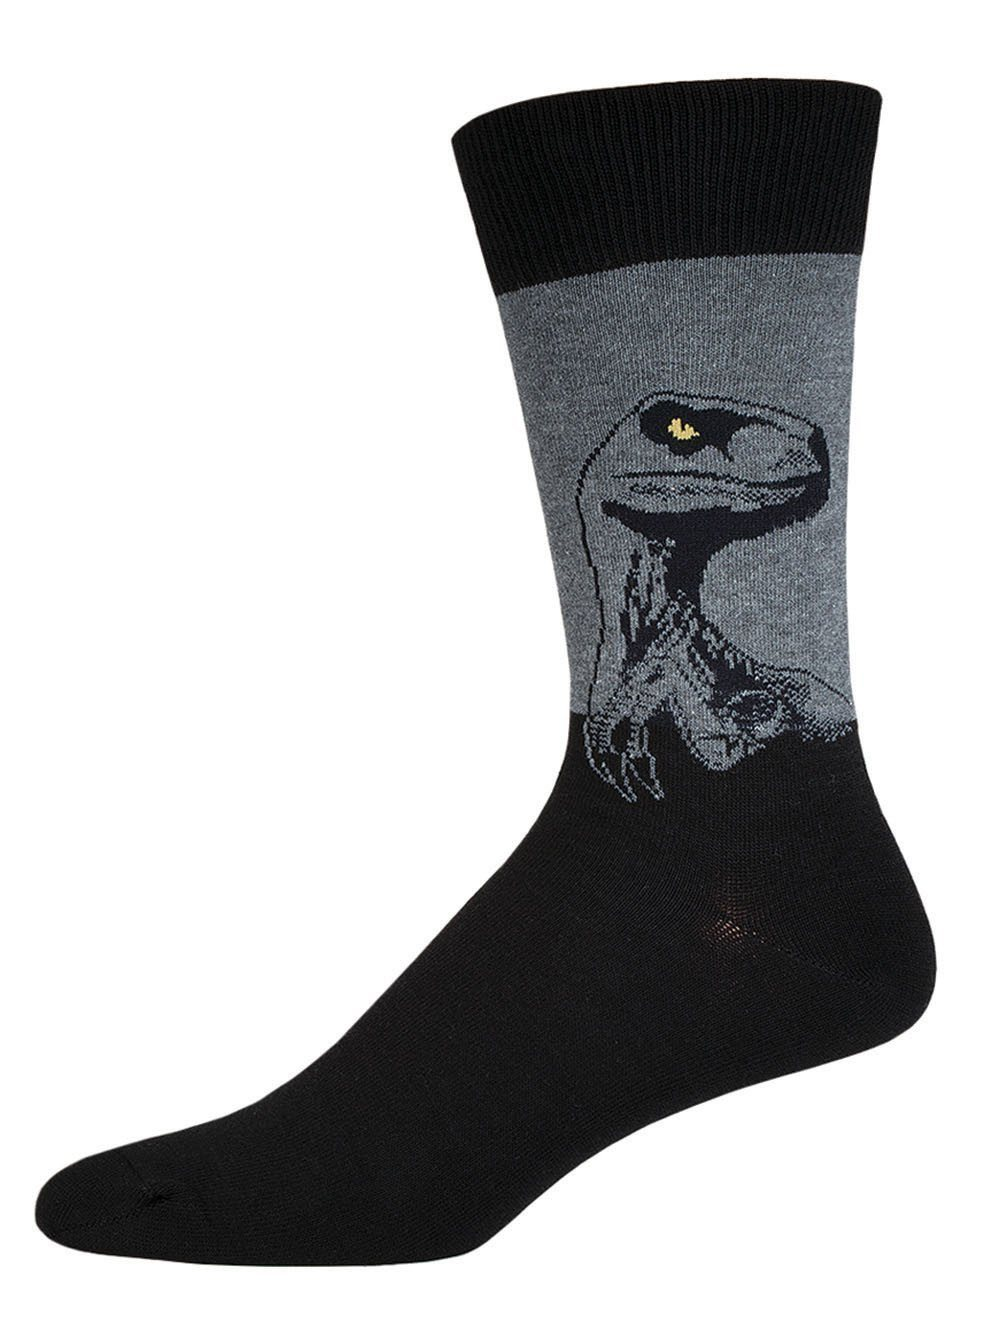 Socksmith - King Size Raptor Crew Socks | Men's - Knock Your Socks Off